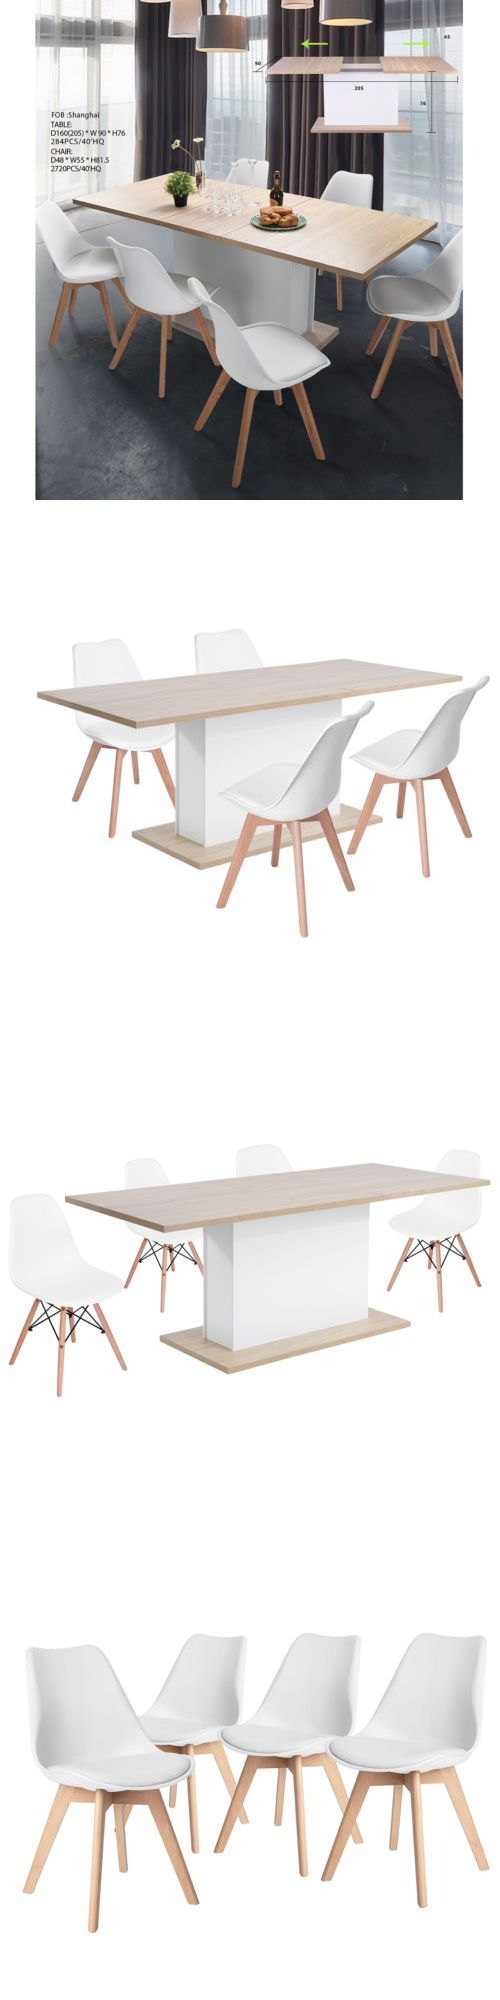 Malvern oak dining set ext table and 6 chairs oakea - Dining Sets 107578 Adjustable 6 8 Seaters Long Extendable Dining Meeting Wood Table And